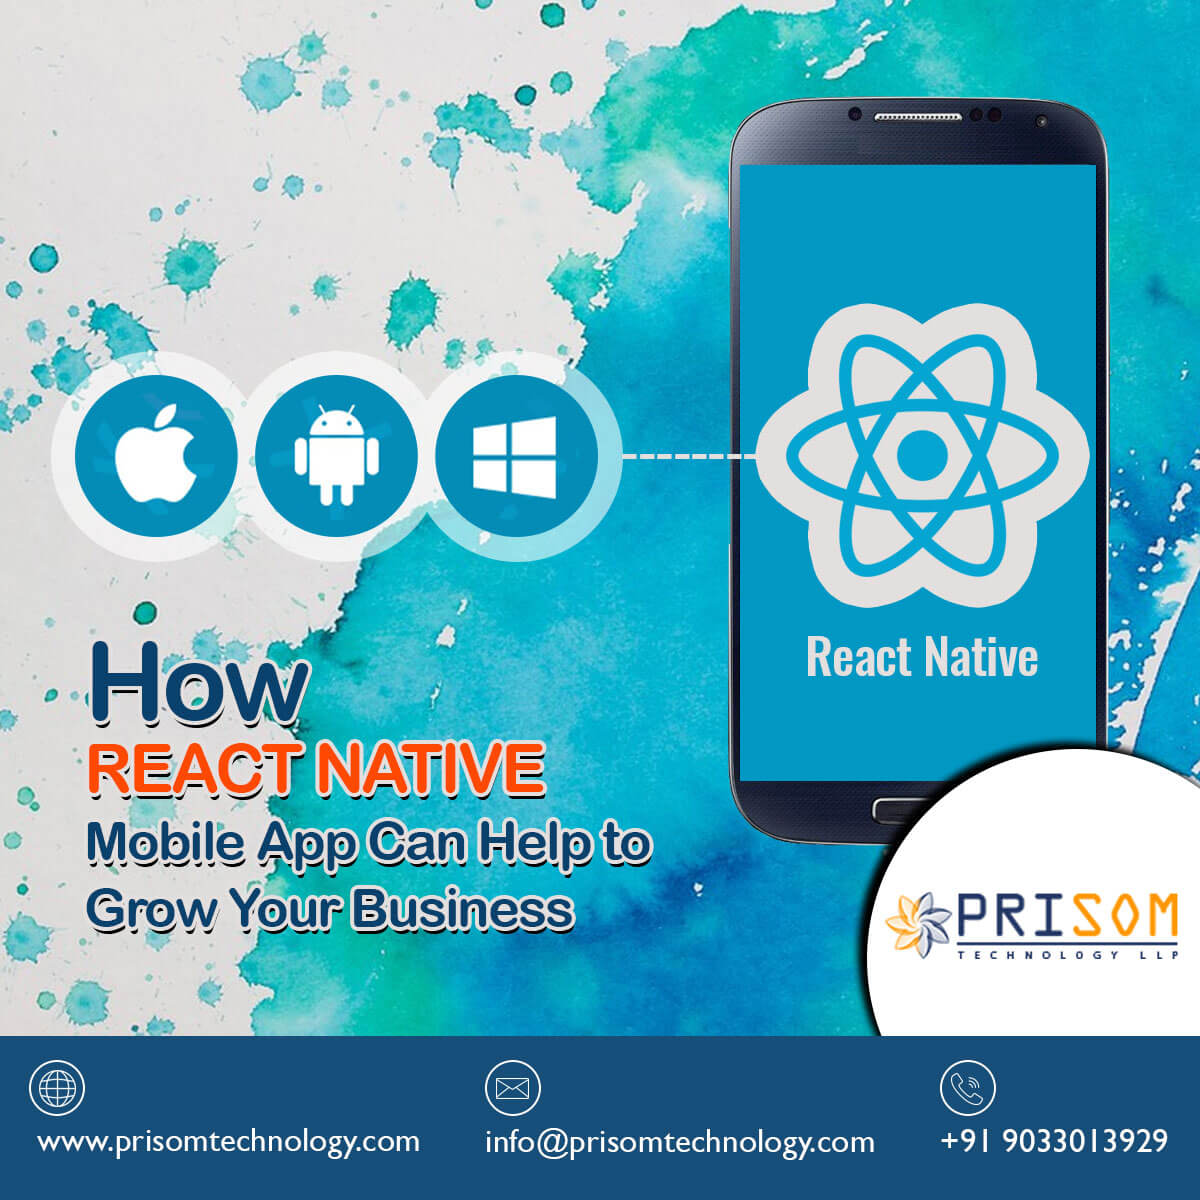 How React Native Mobile App Can Help to Grow Your Business